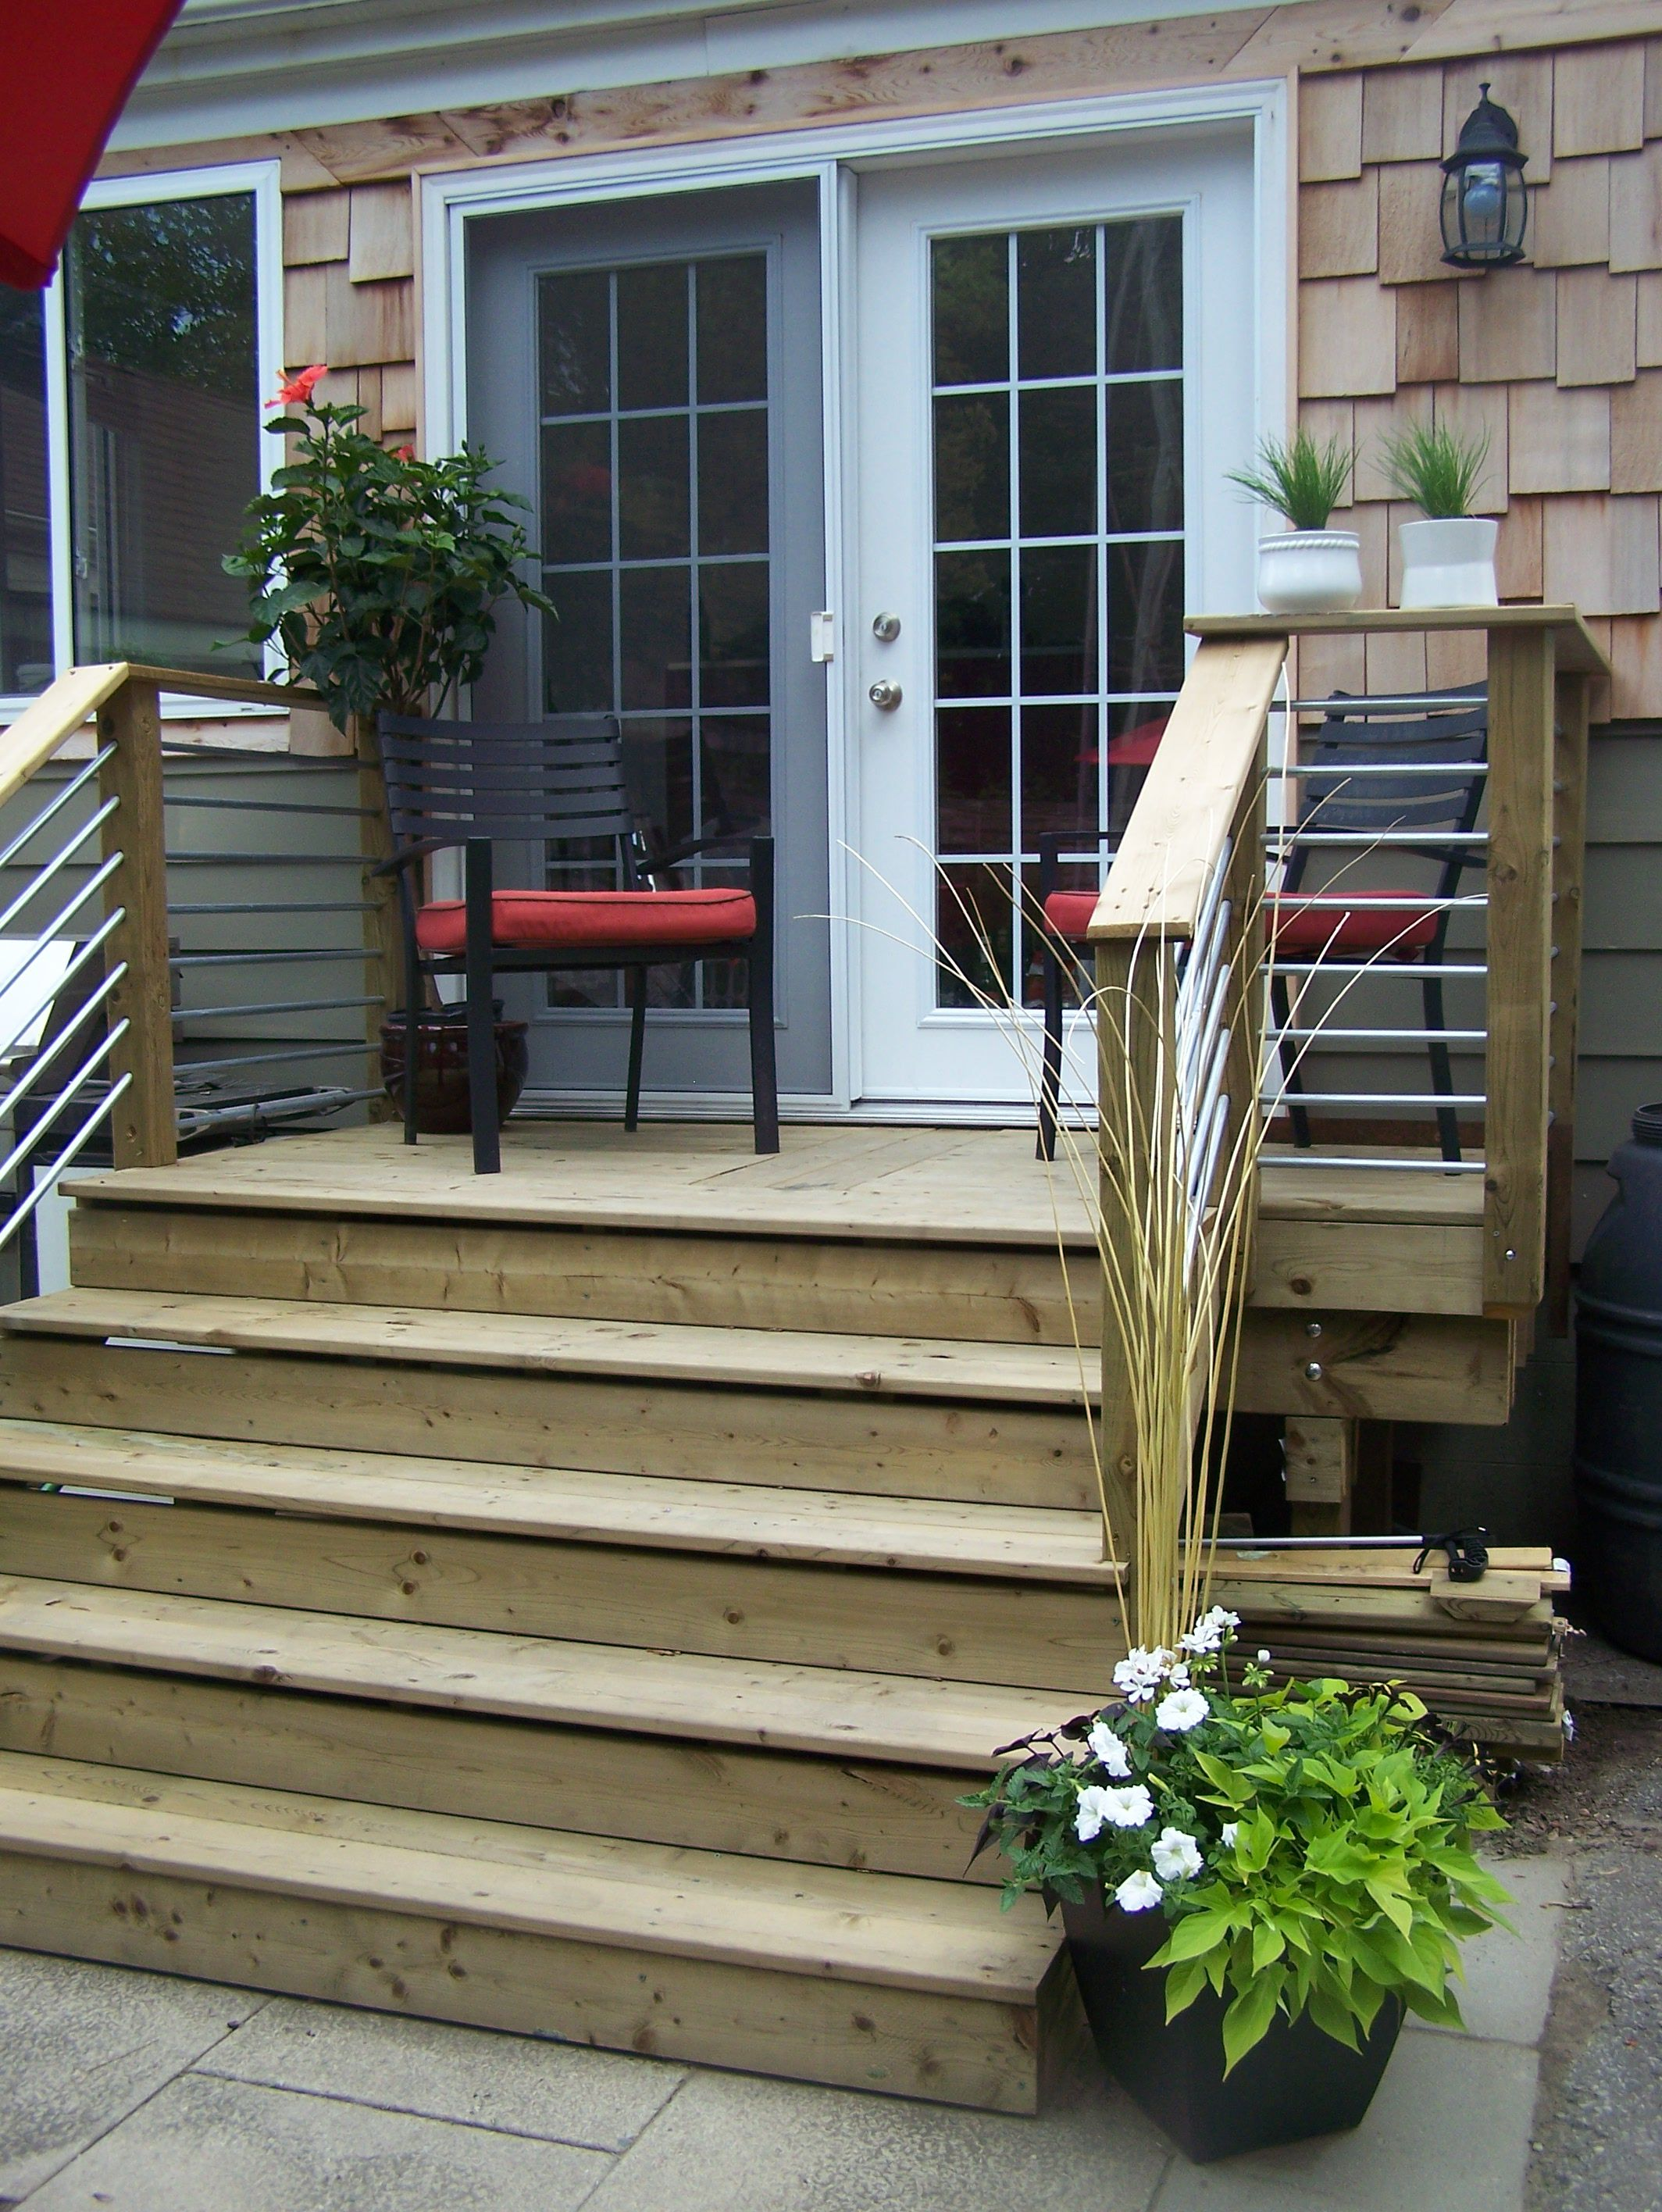 Small Front Porches Designs Front Porch Steps Porch Design: Patio Stairs, Porch Design, Building A Deck